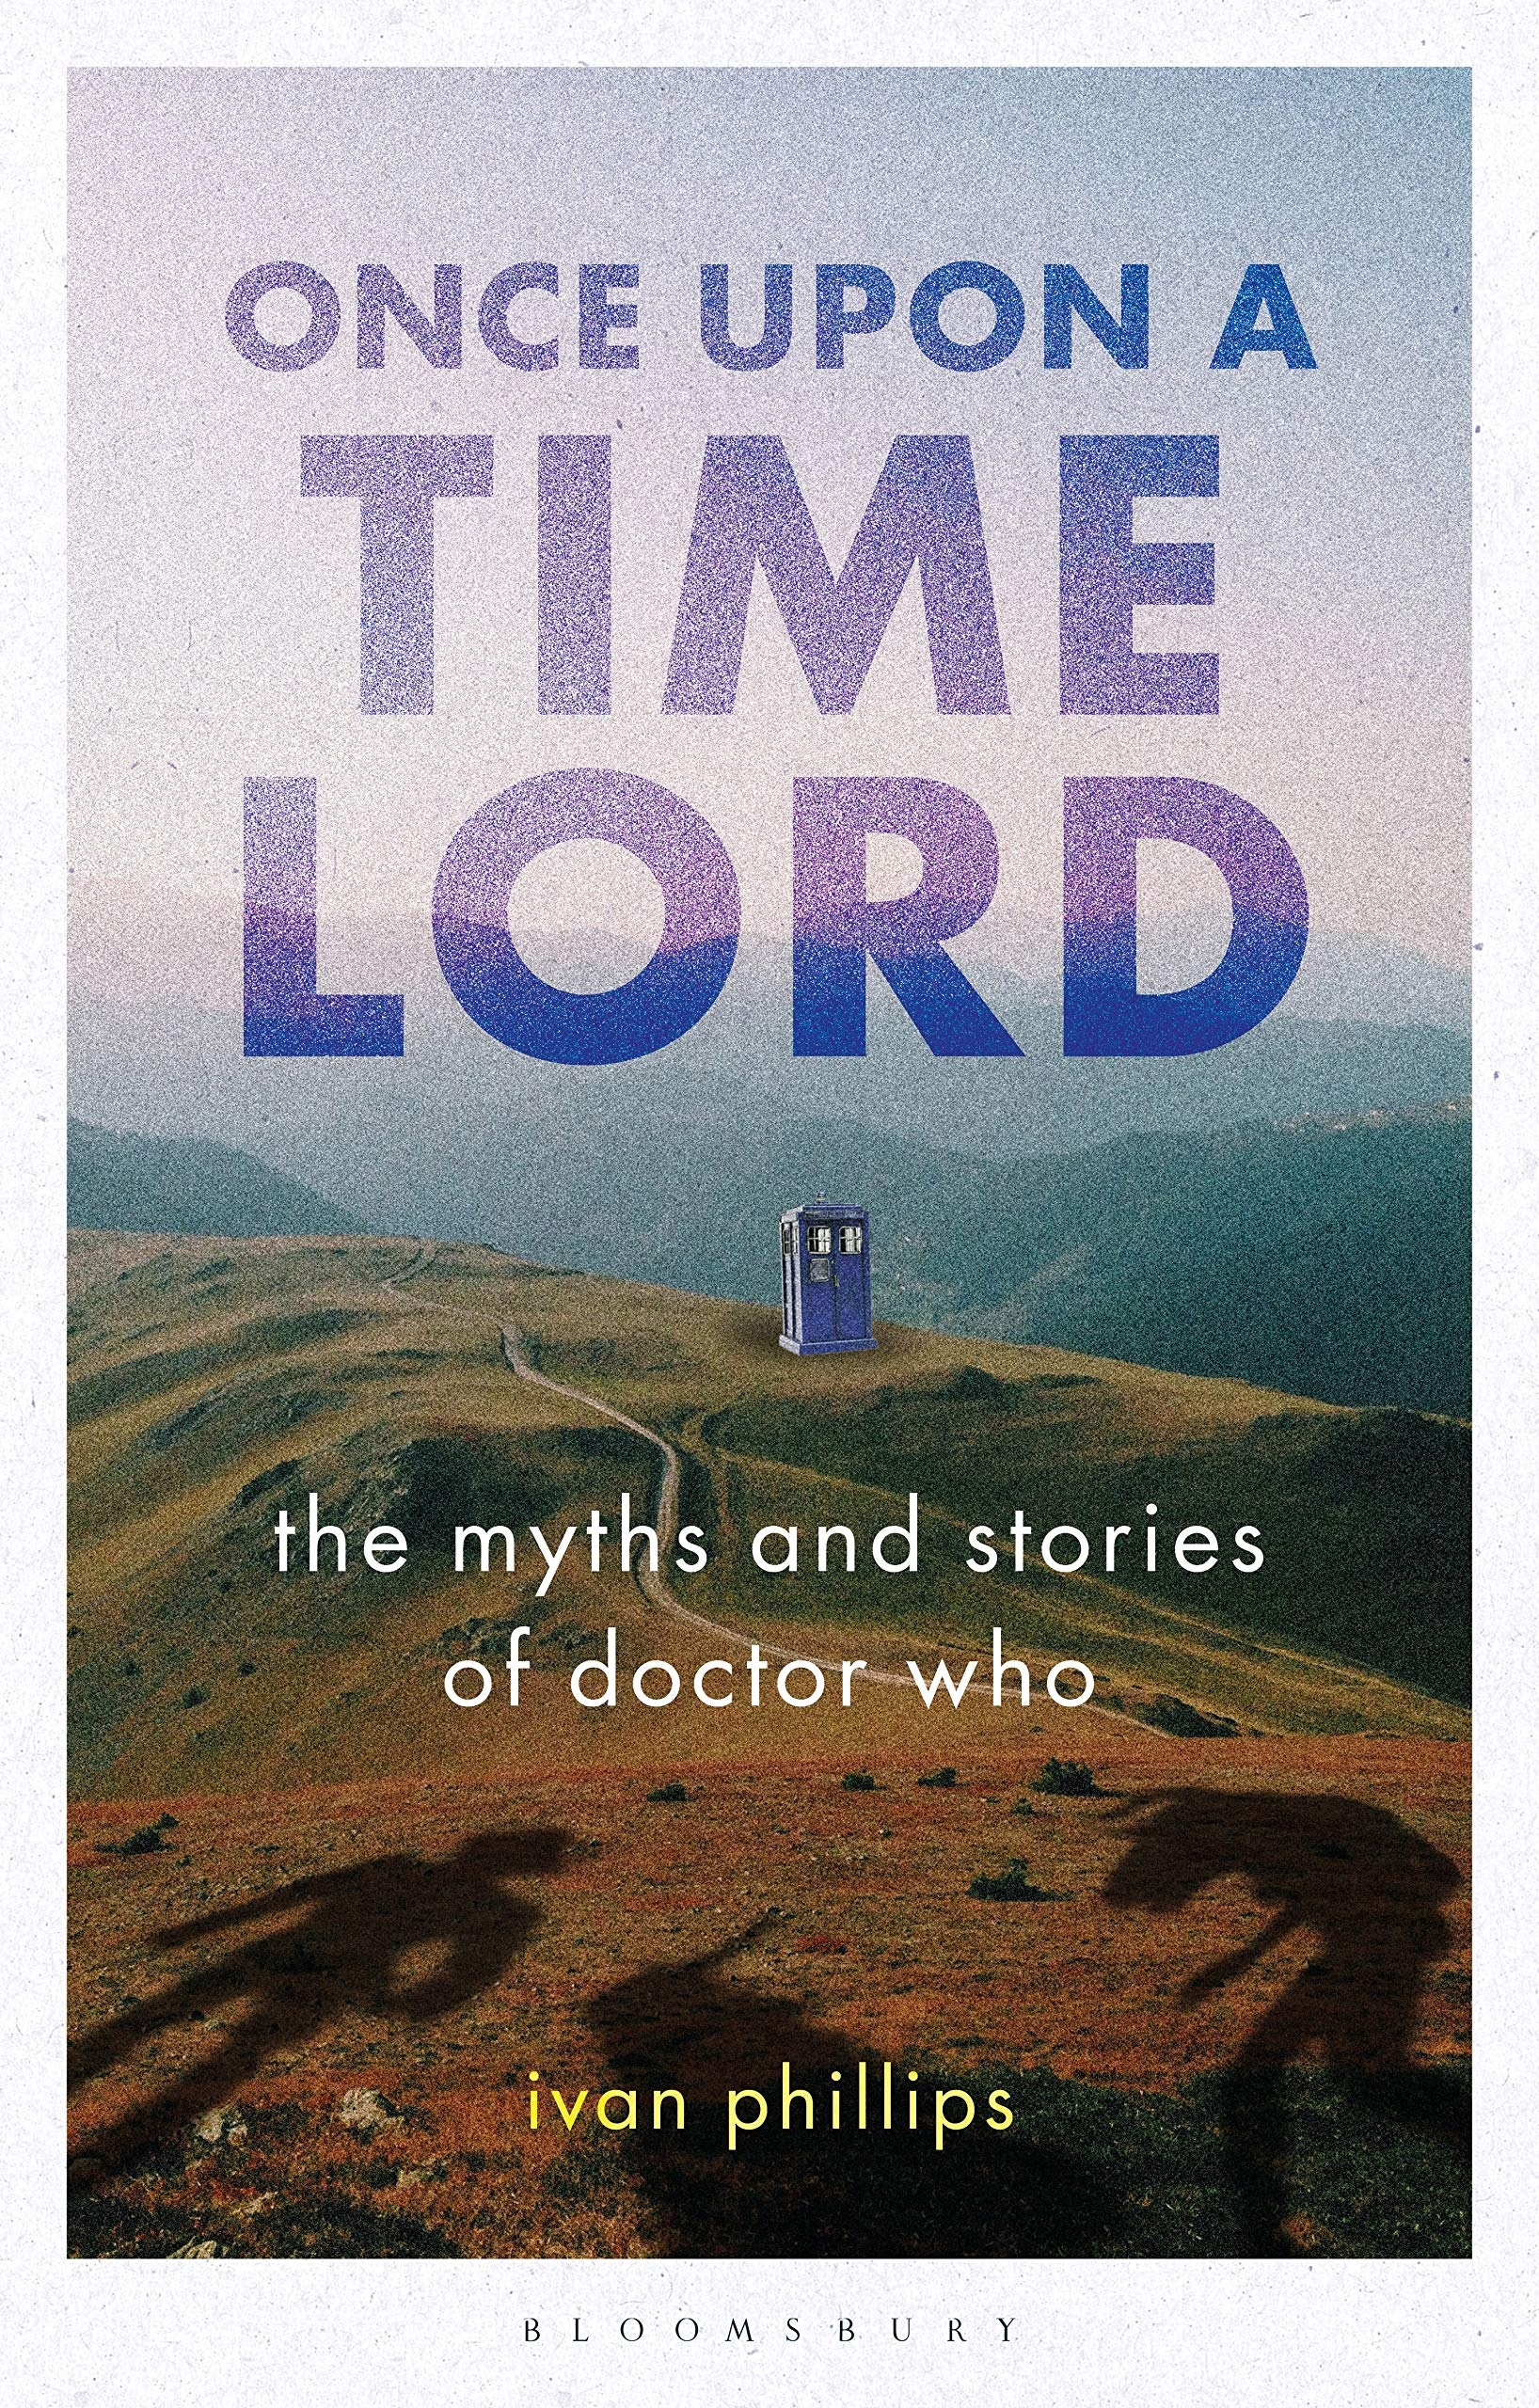 Reviewed: Once Upon A Time Lord – The Myths and Stories of Doctor Who